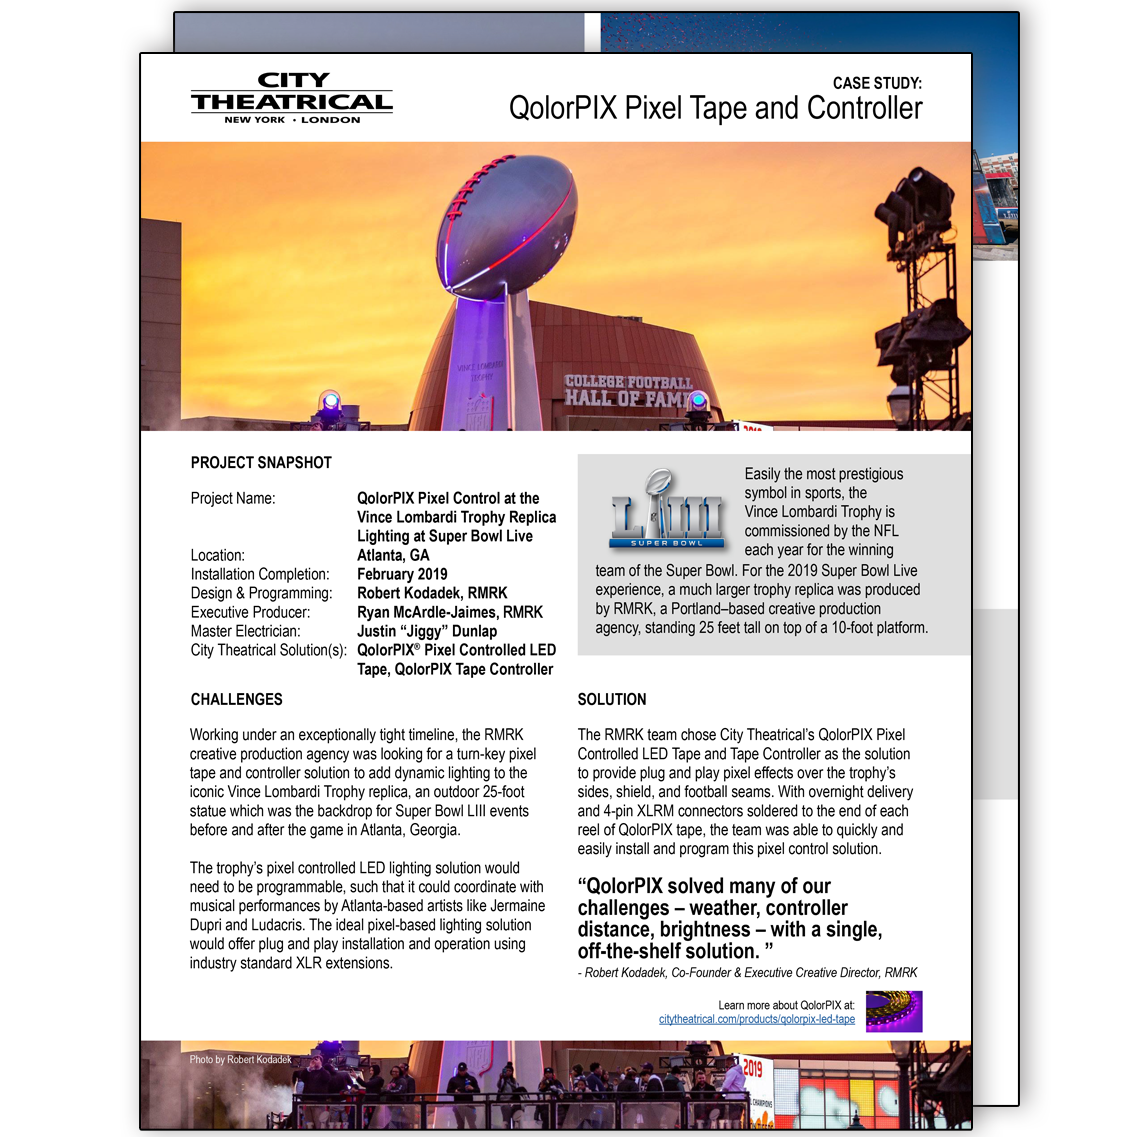 Case Study: Lombardi Trophy Replica for Super Bowl LVIII